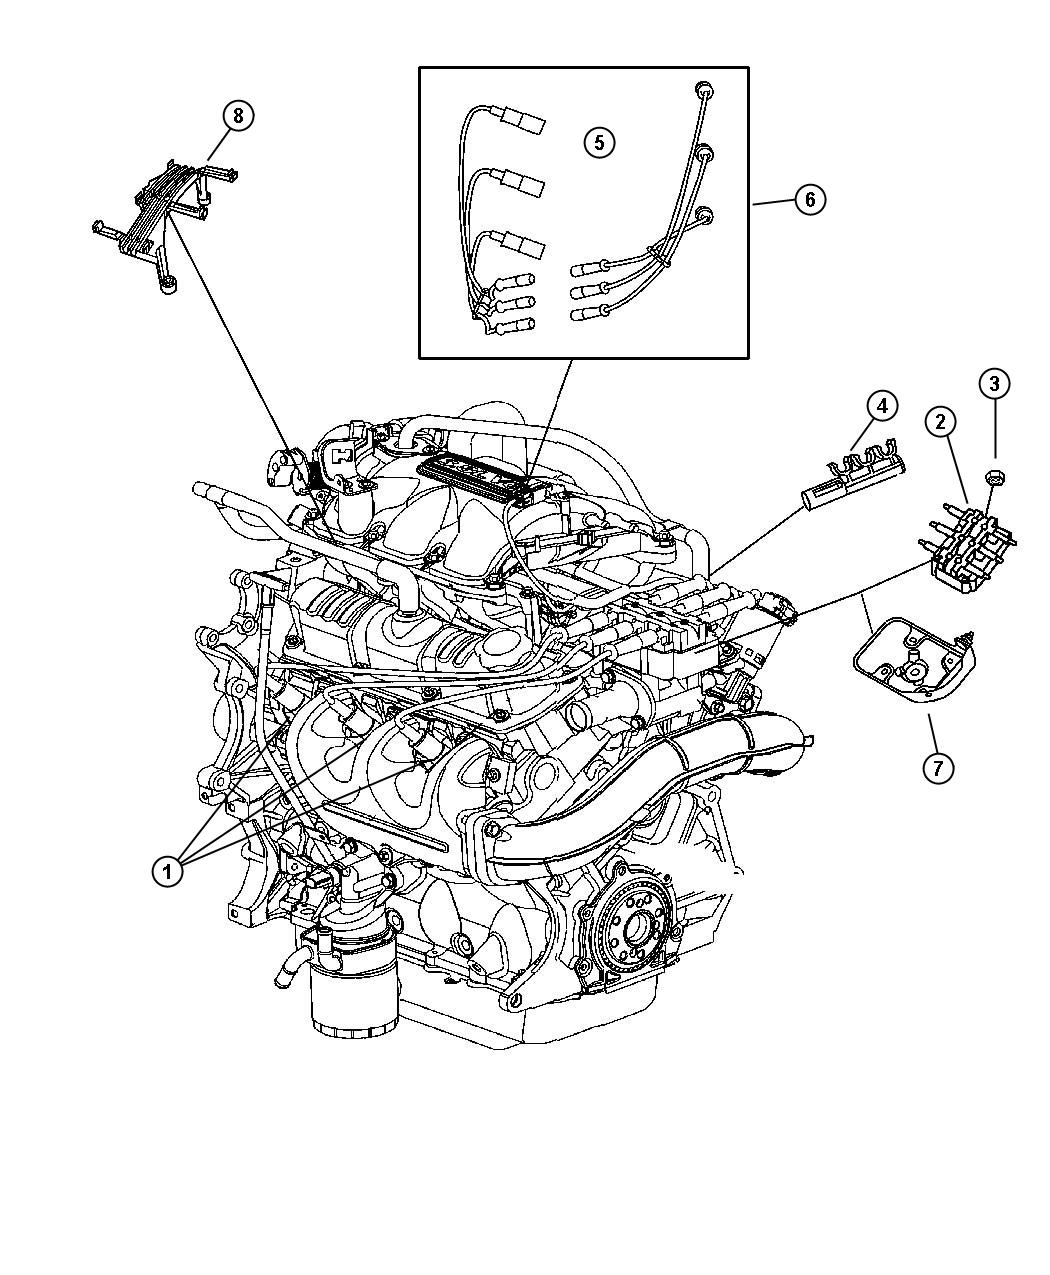 2007 Pt Cruiser Timing Belt Diagram Schematic Diagrams Chrysler 3 5 Engine Pacifica 4 0 Auto Electrical Wiring Replacement